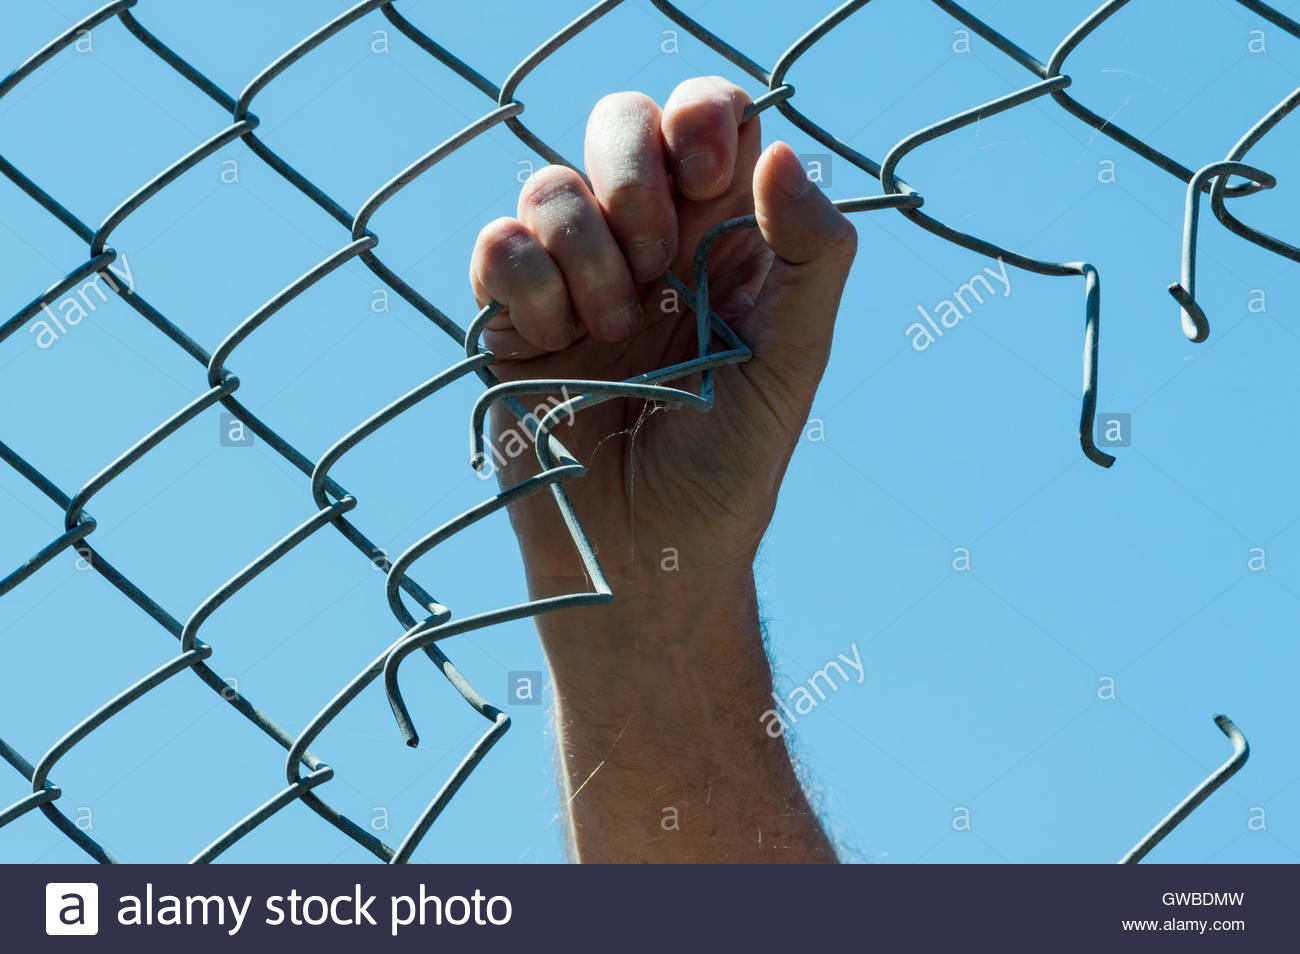 Concept image looking up at a mans hand holding onto a chain link fence with a hole cut into it - Stock Image